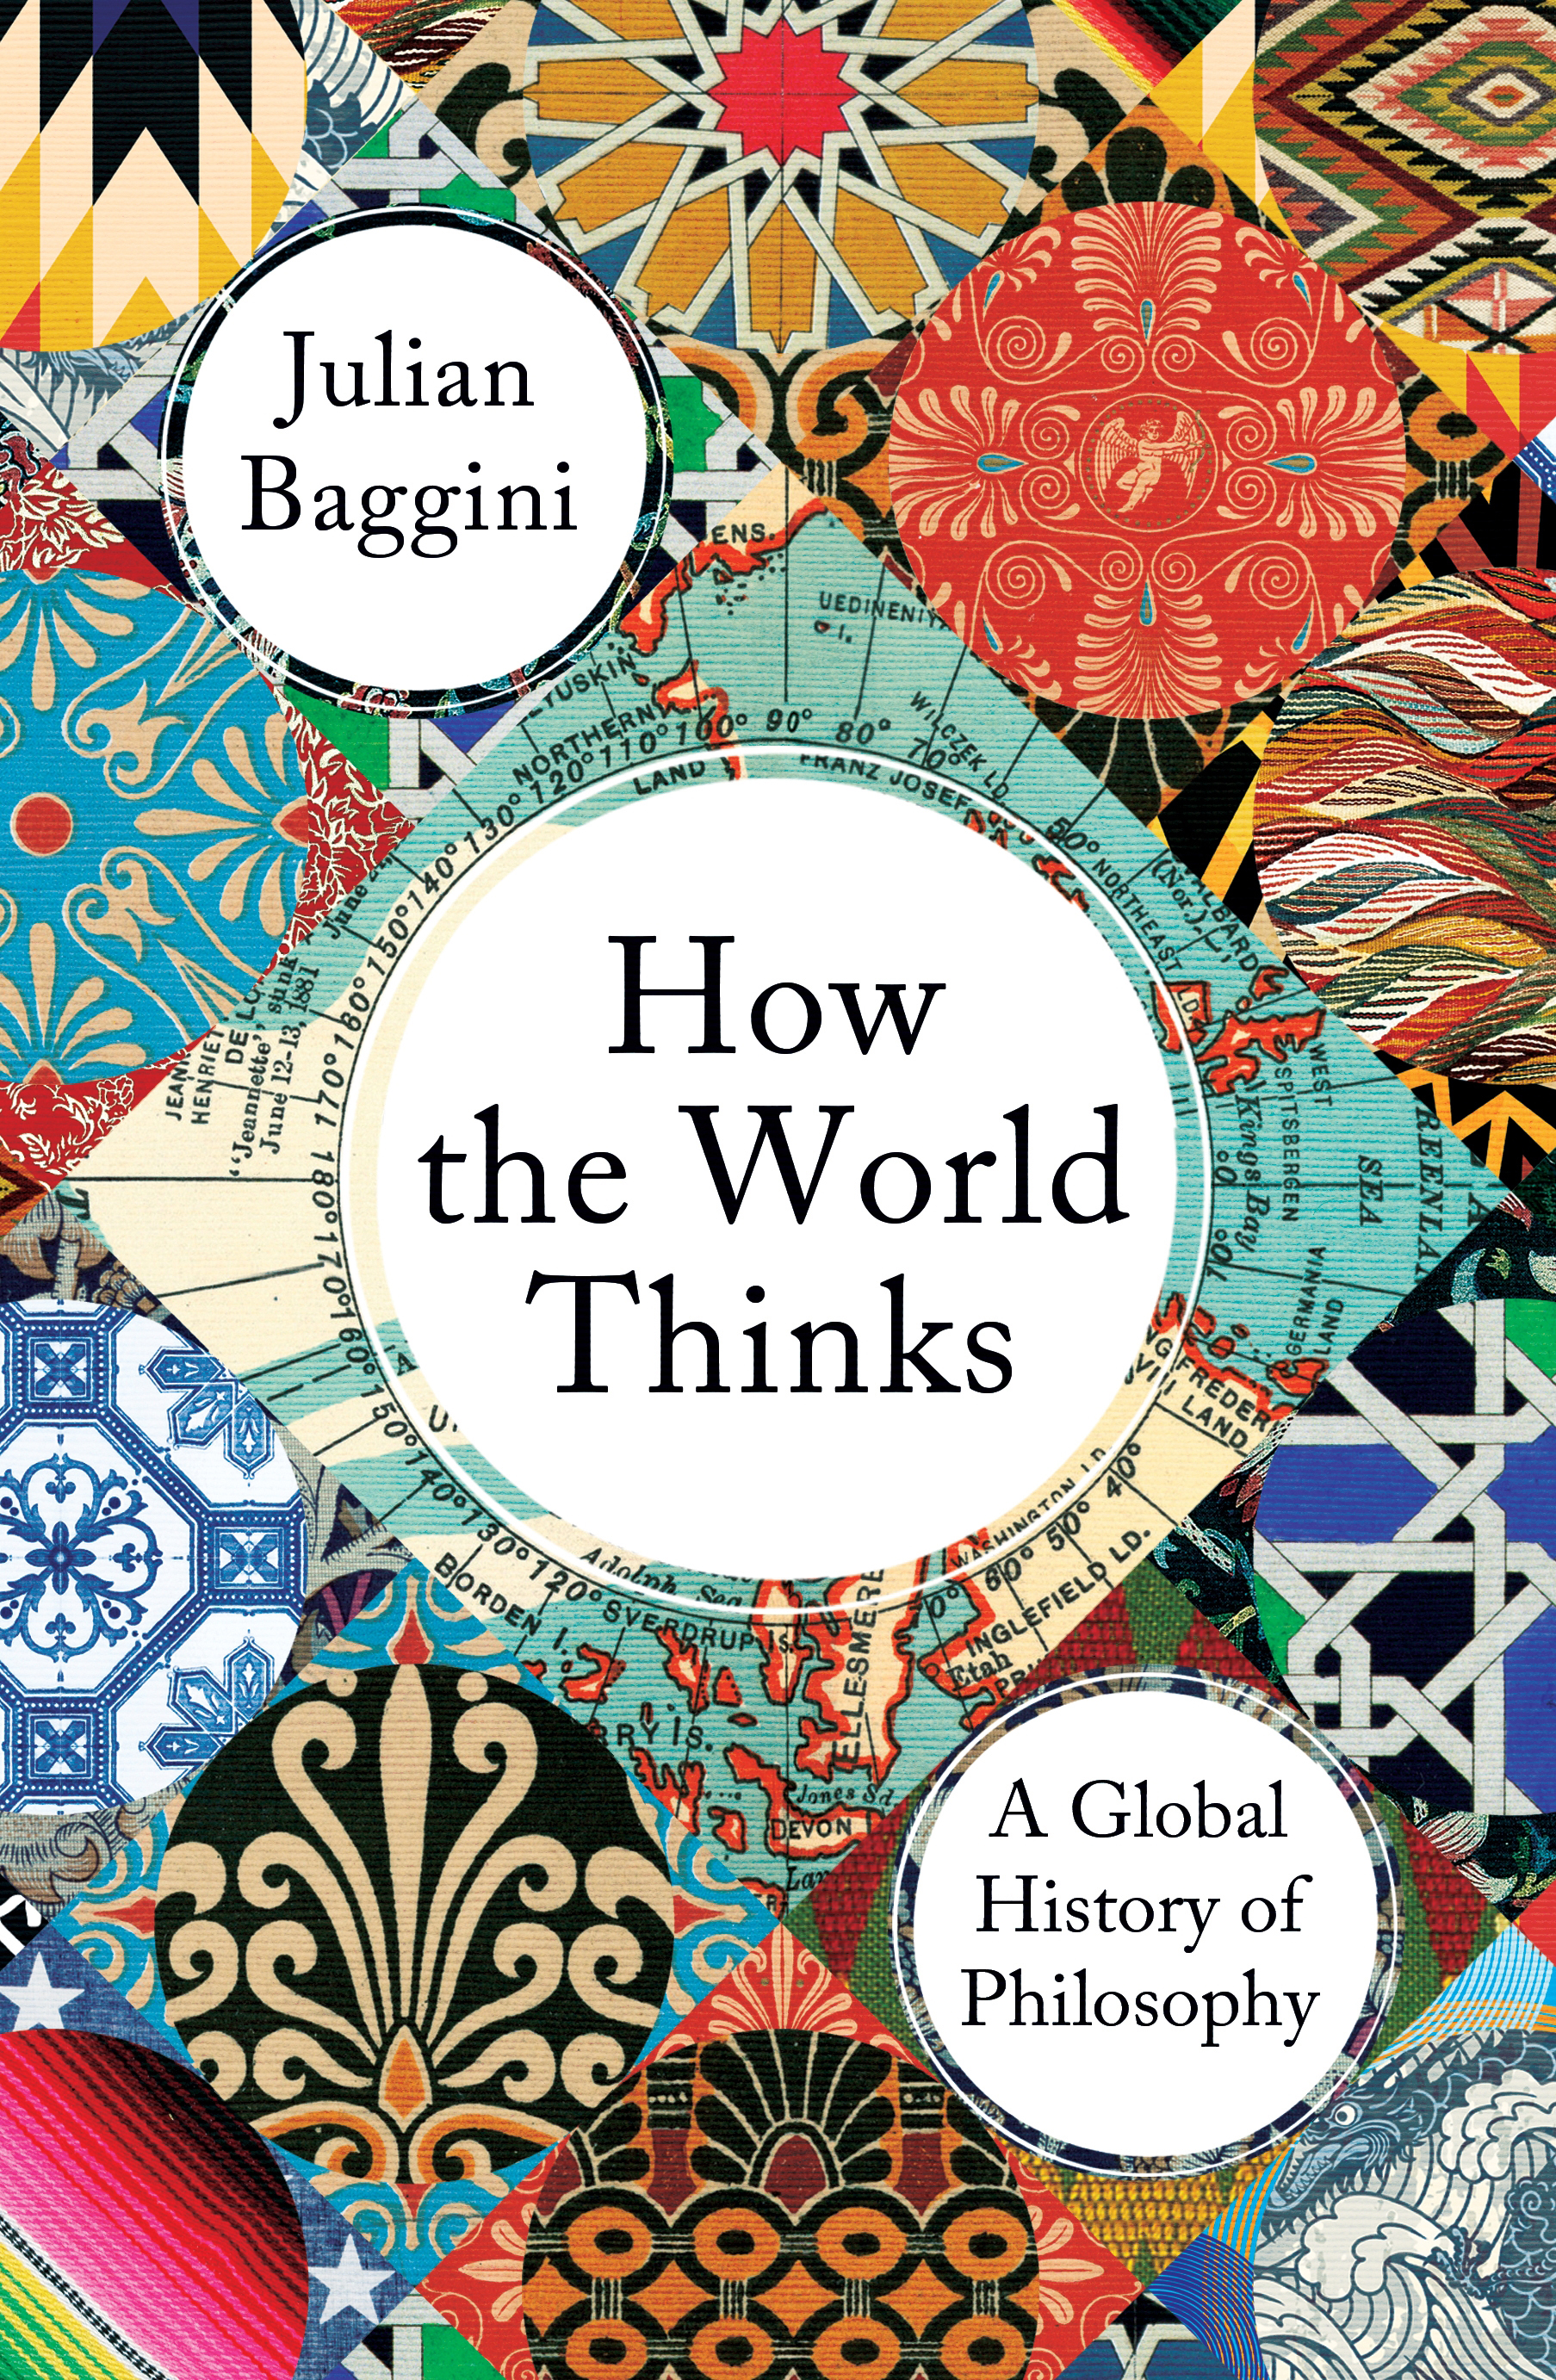 How the World Thinks by Julian Baggini, ISBN: 9781783784837